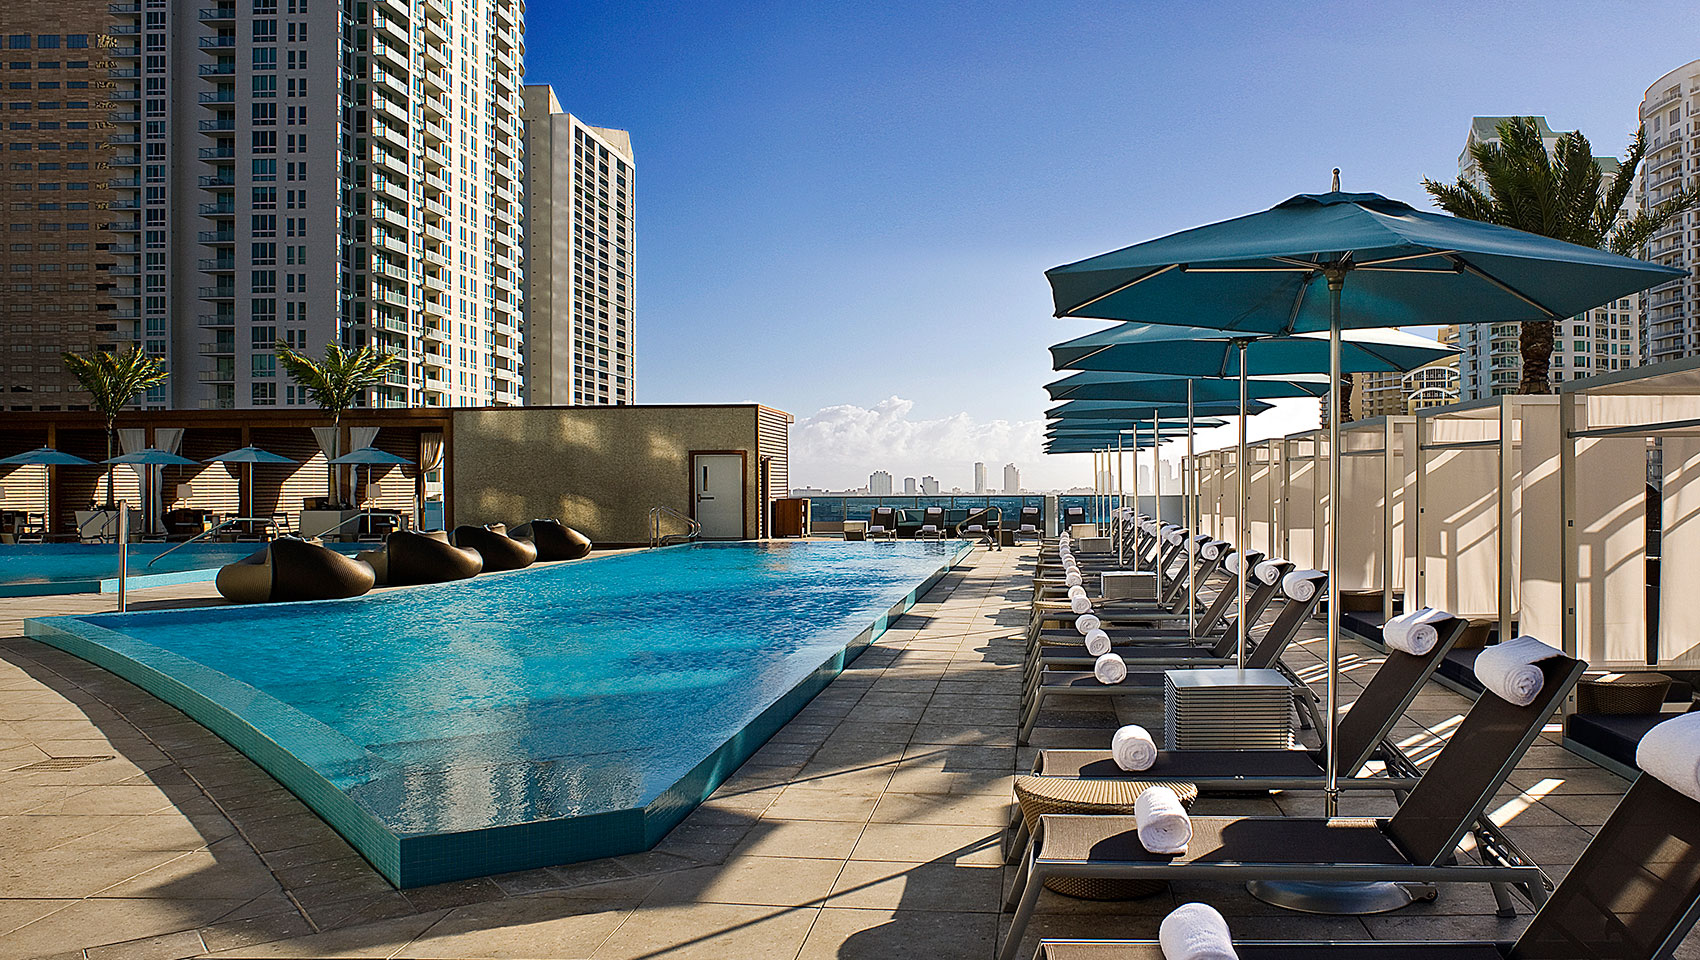 Miami Hotels With Rooftop Pools Kimpton EPIC Hotel : epc exterior 6285 98426809 from www.epichotel.com size 1700 x 960 jpeg 583kB